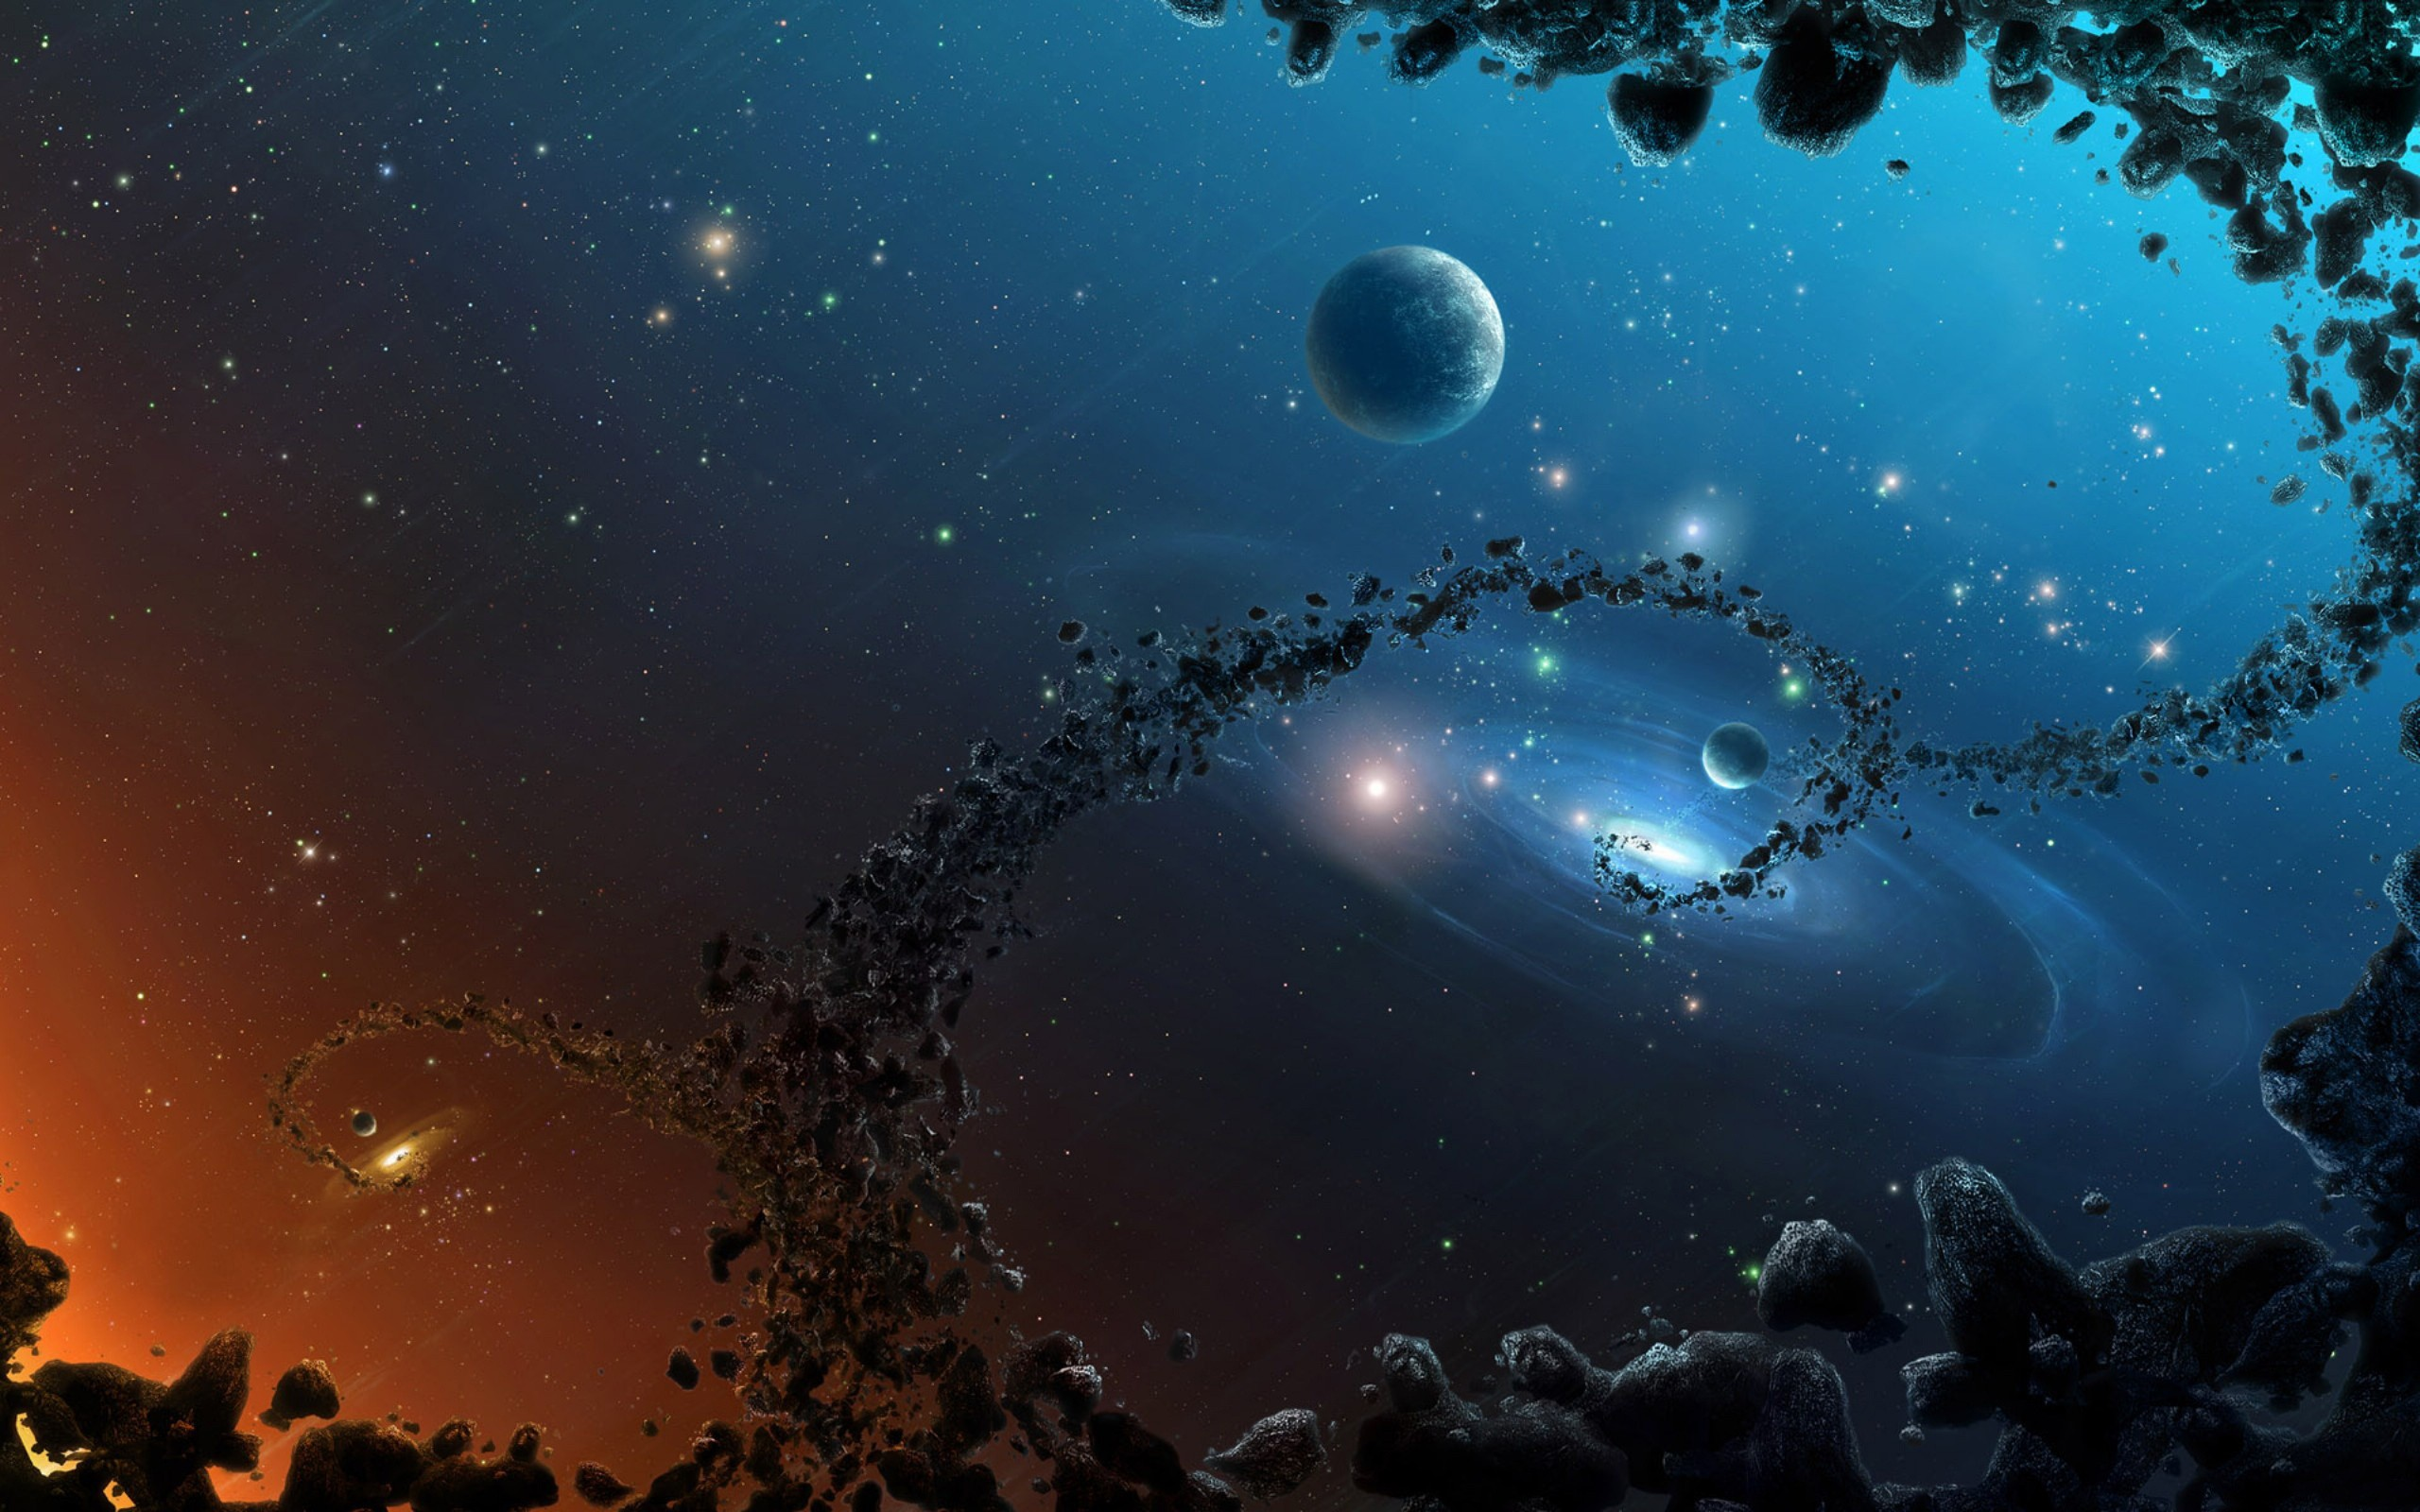 outer space background beautiful wallpaper images 2560x1600